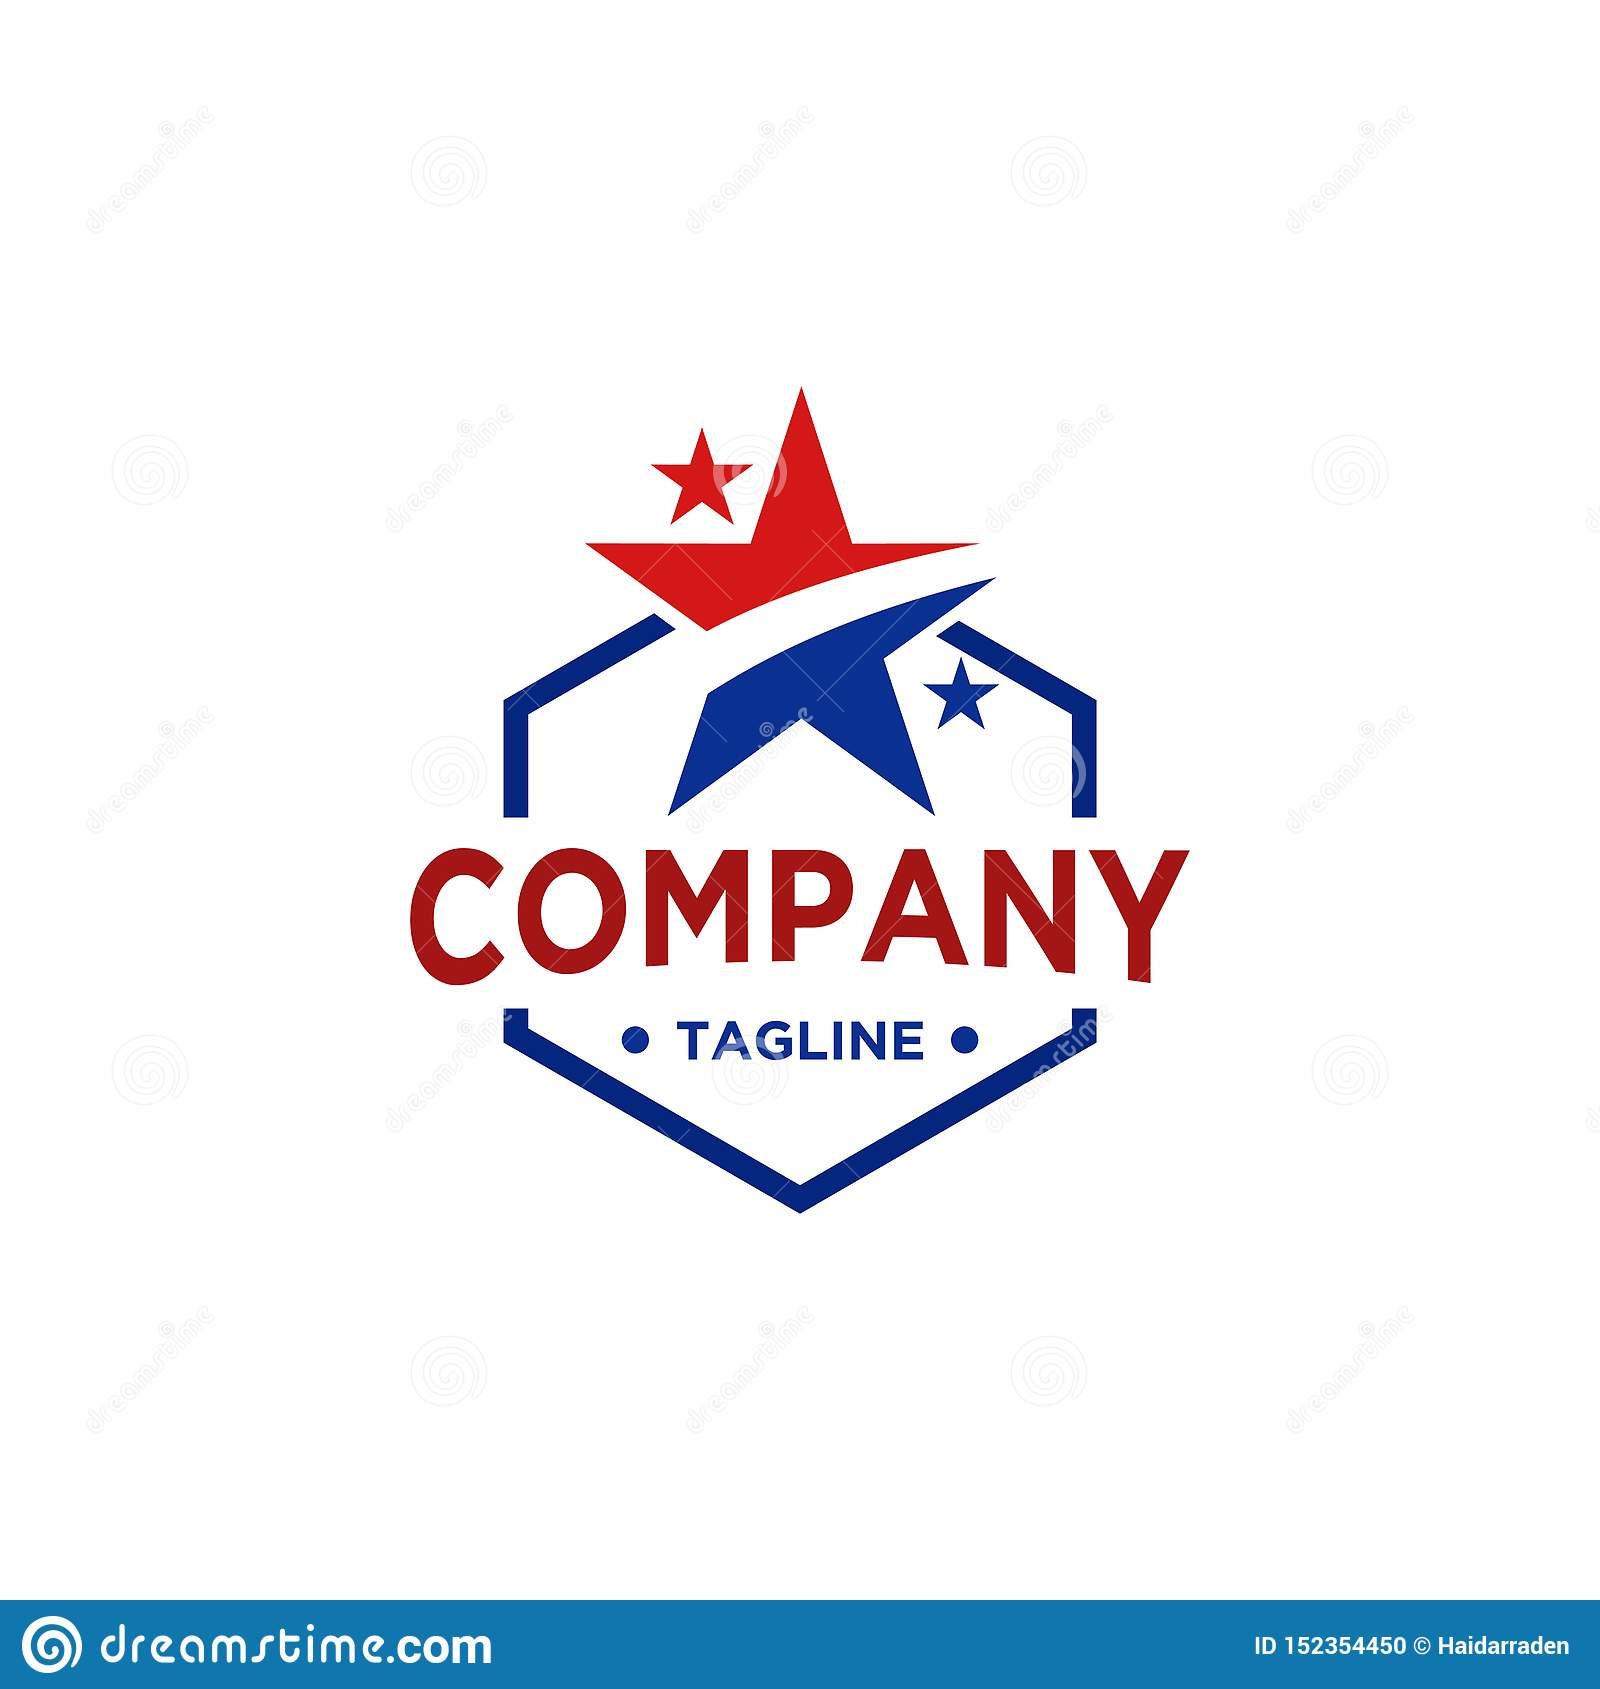 Star logo design with red and blue color